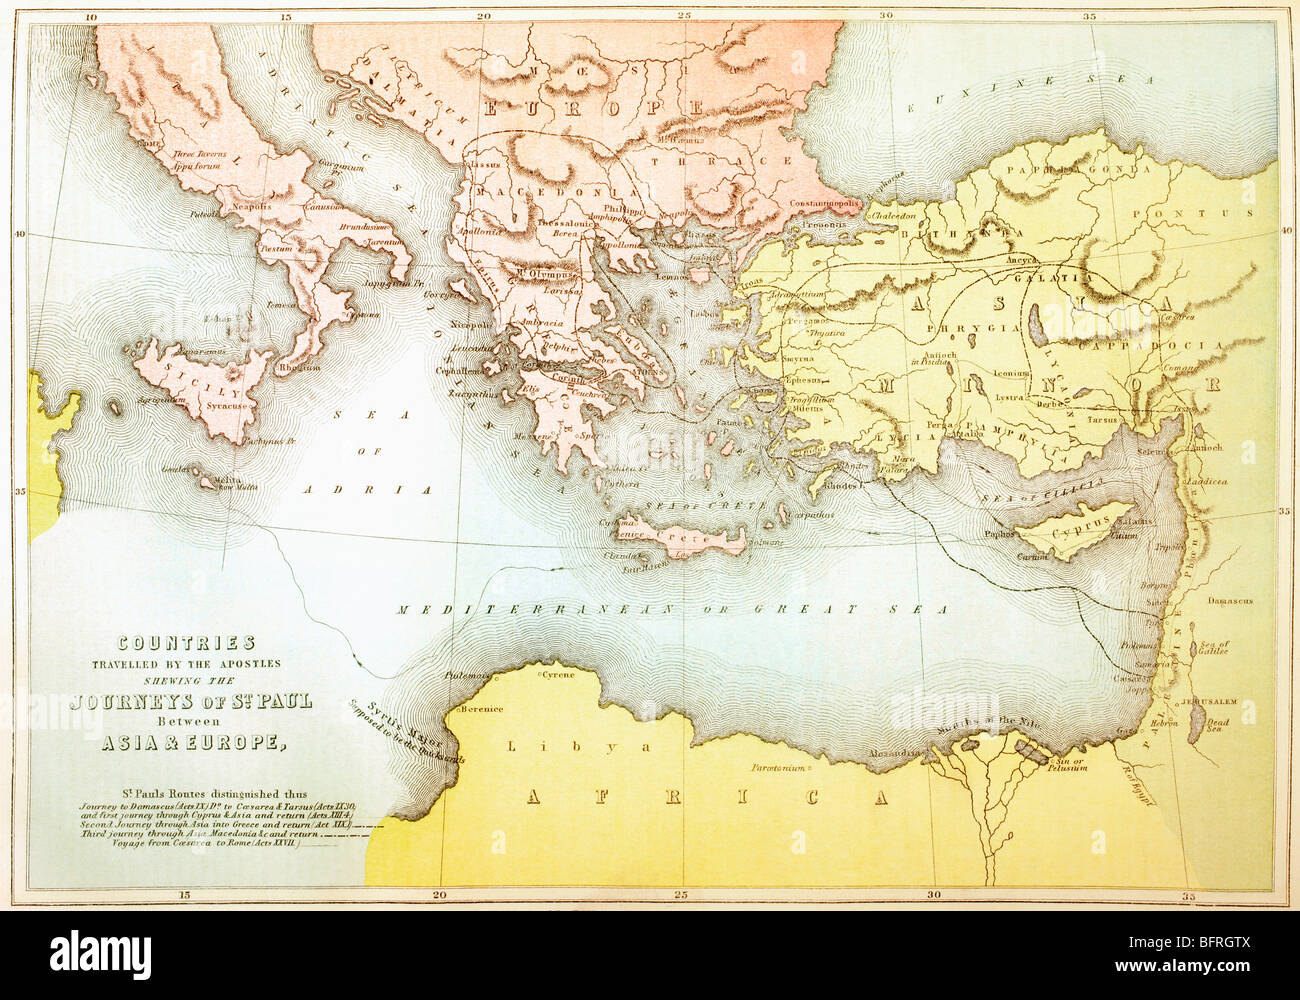 Countries travelled by the apostles and showing the journeys of St Paul between Asia and Europe. - Stock Image